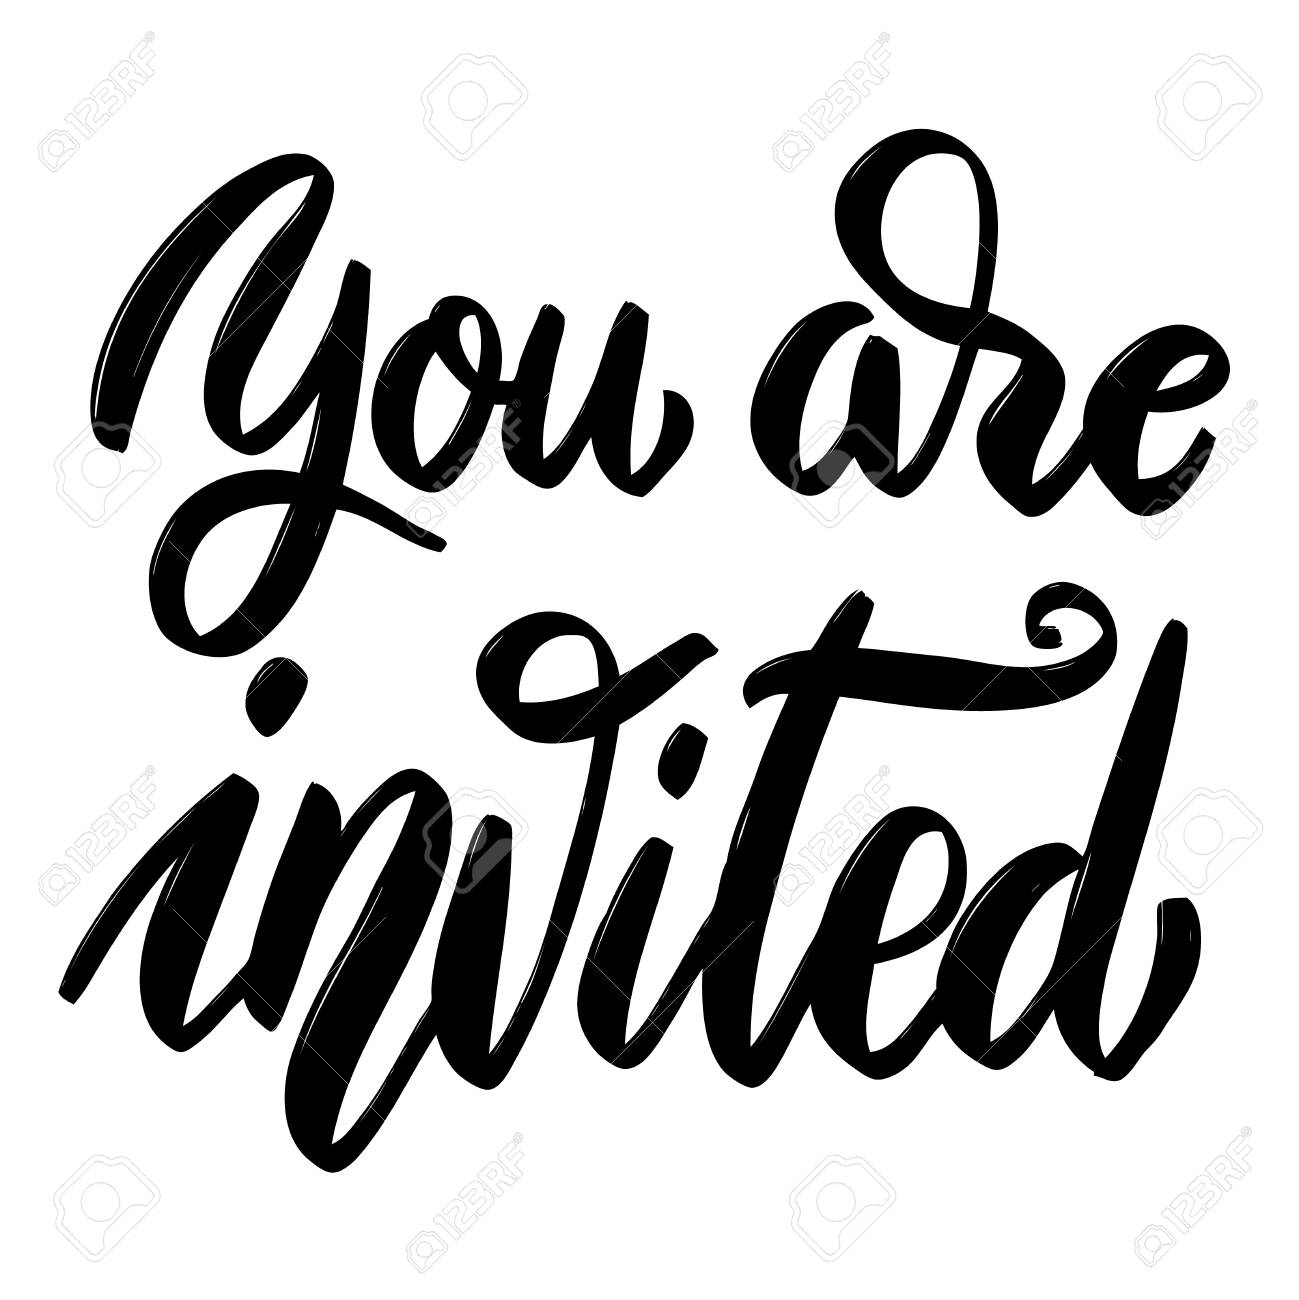 You are invited. Hand drawn lettering phrase on white background.